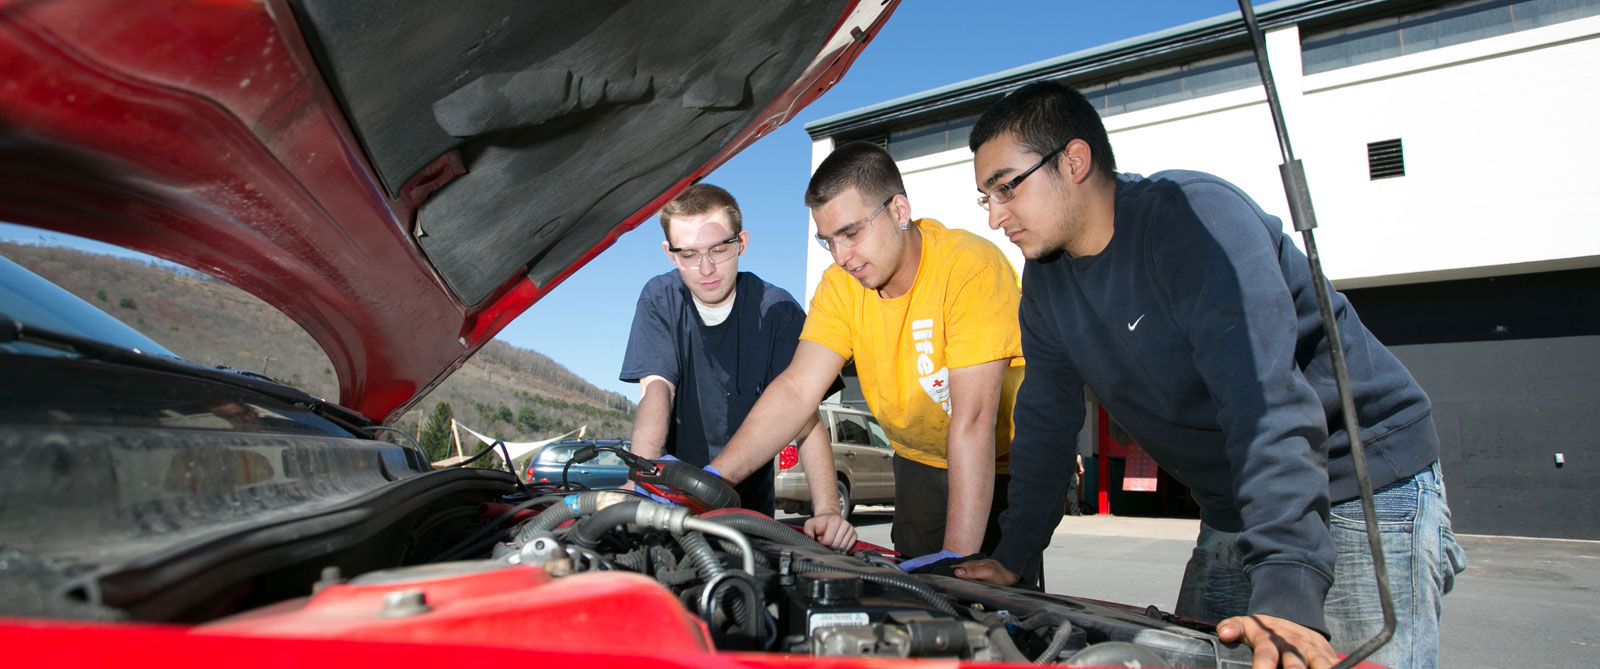 Three students working on a car engine